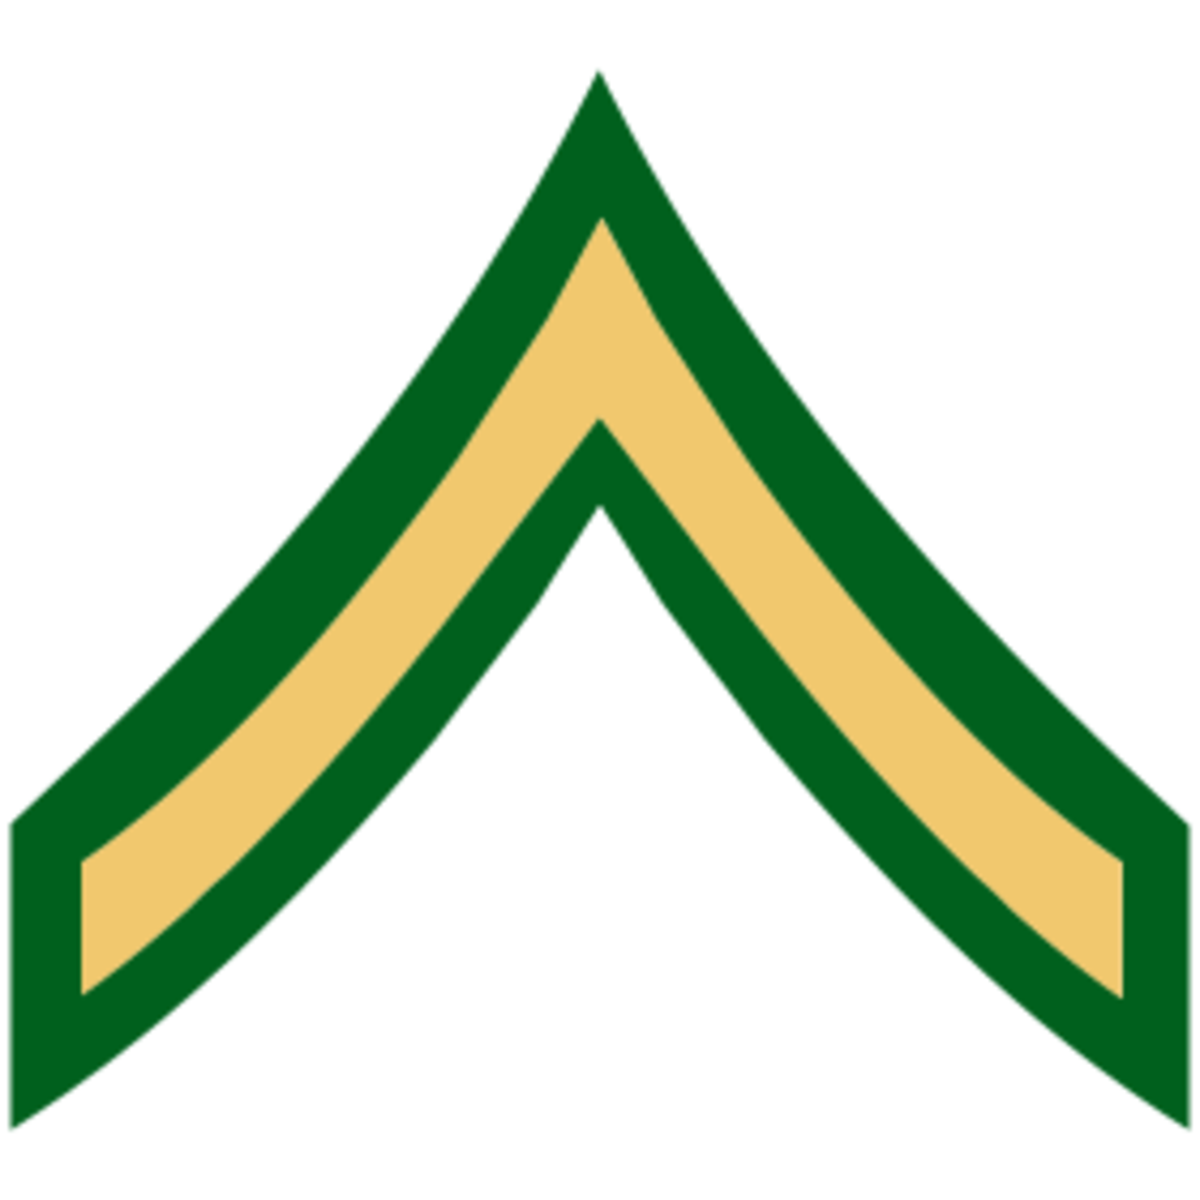 Army Ranks:  PV1, PV2 and PFC